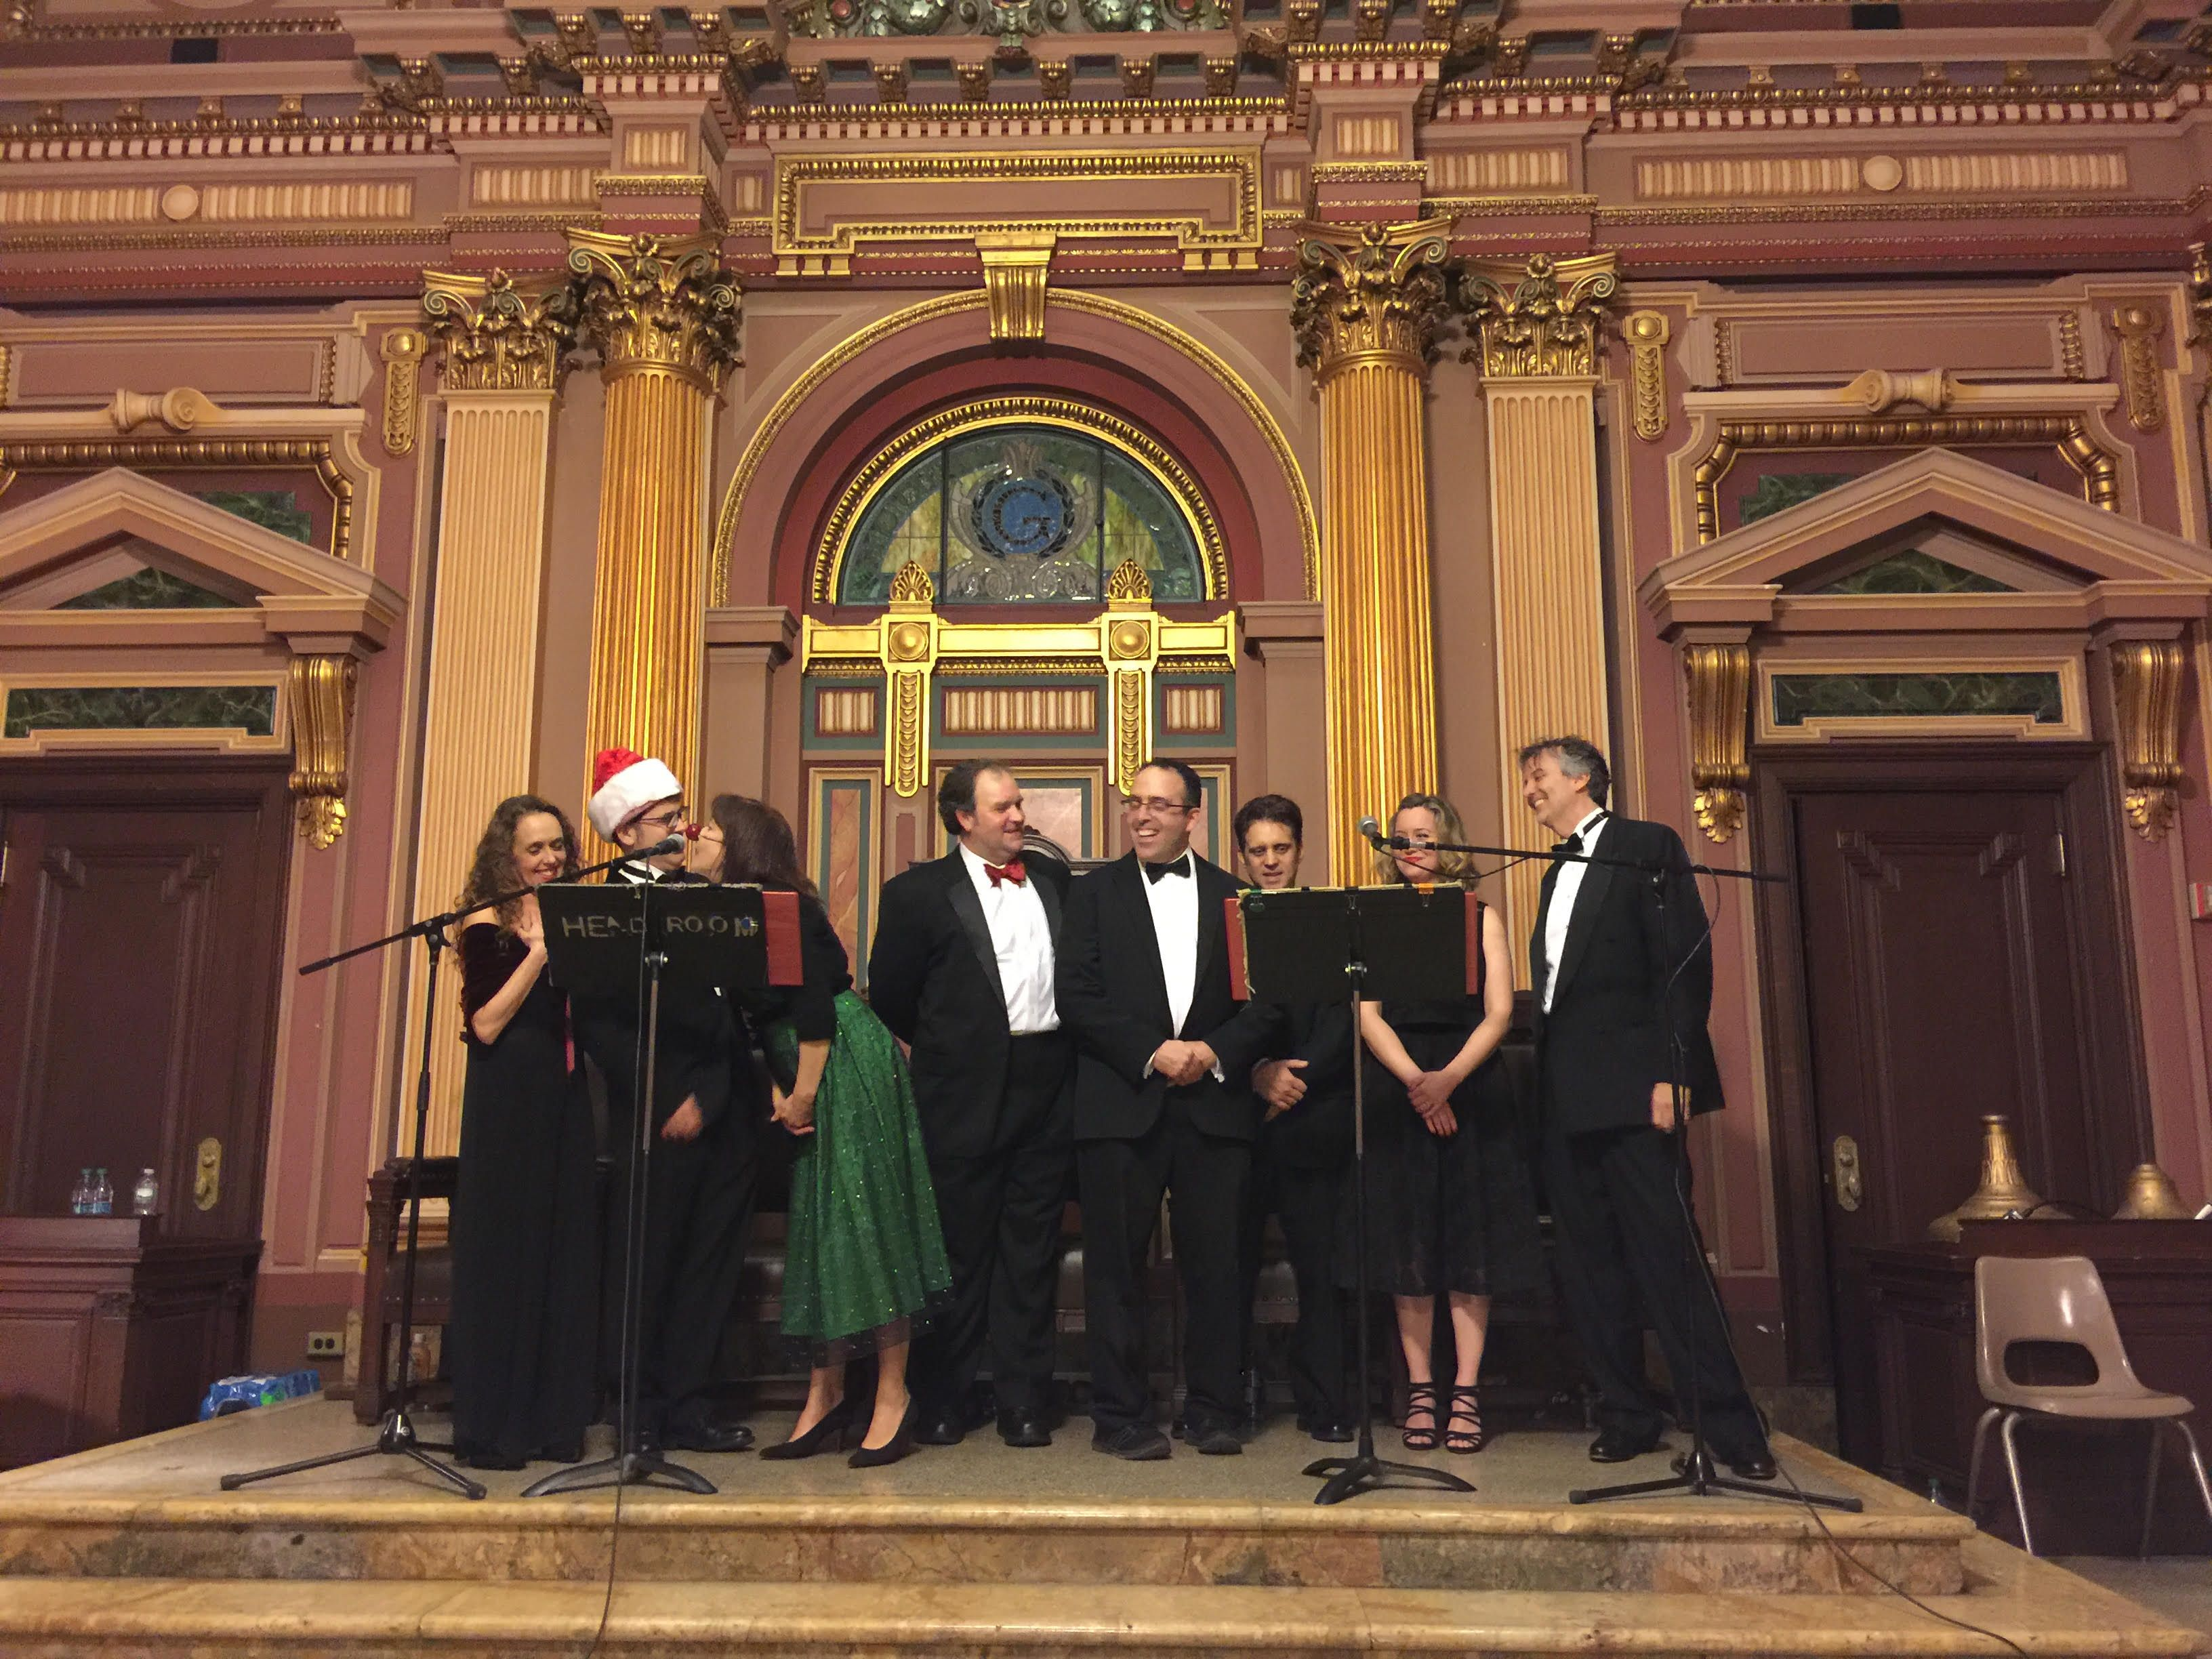 At the Christmas party, they had a wonderful performance of Rudolph the Rednosed Reindeer (Masonic Hall in Chelsea, NYC)